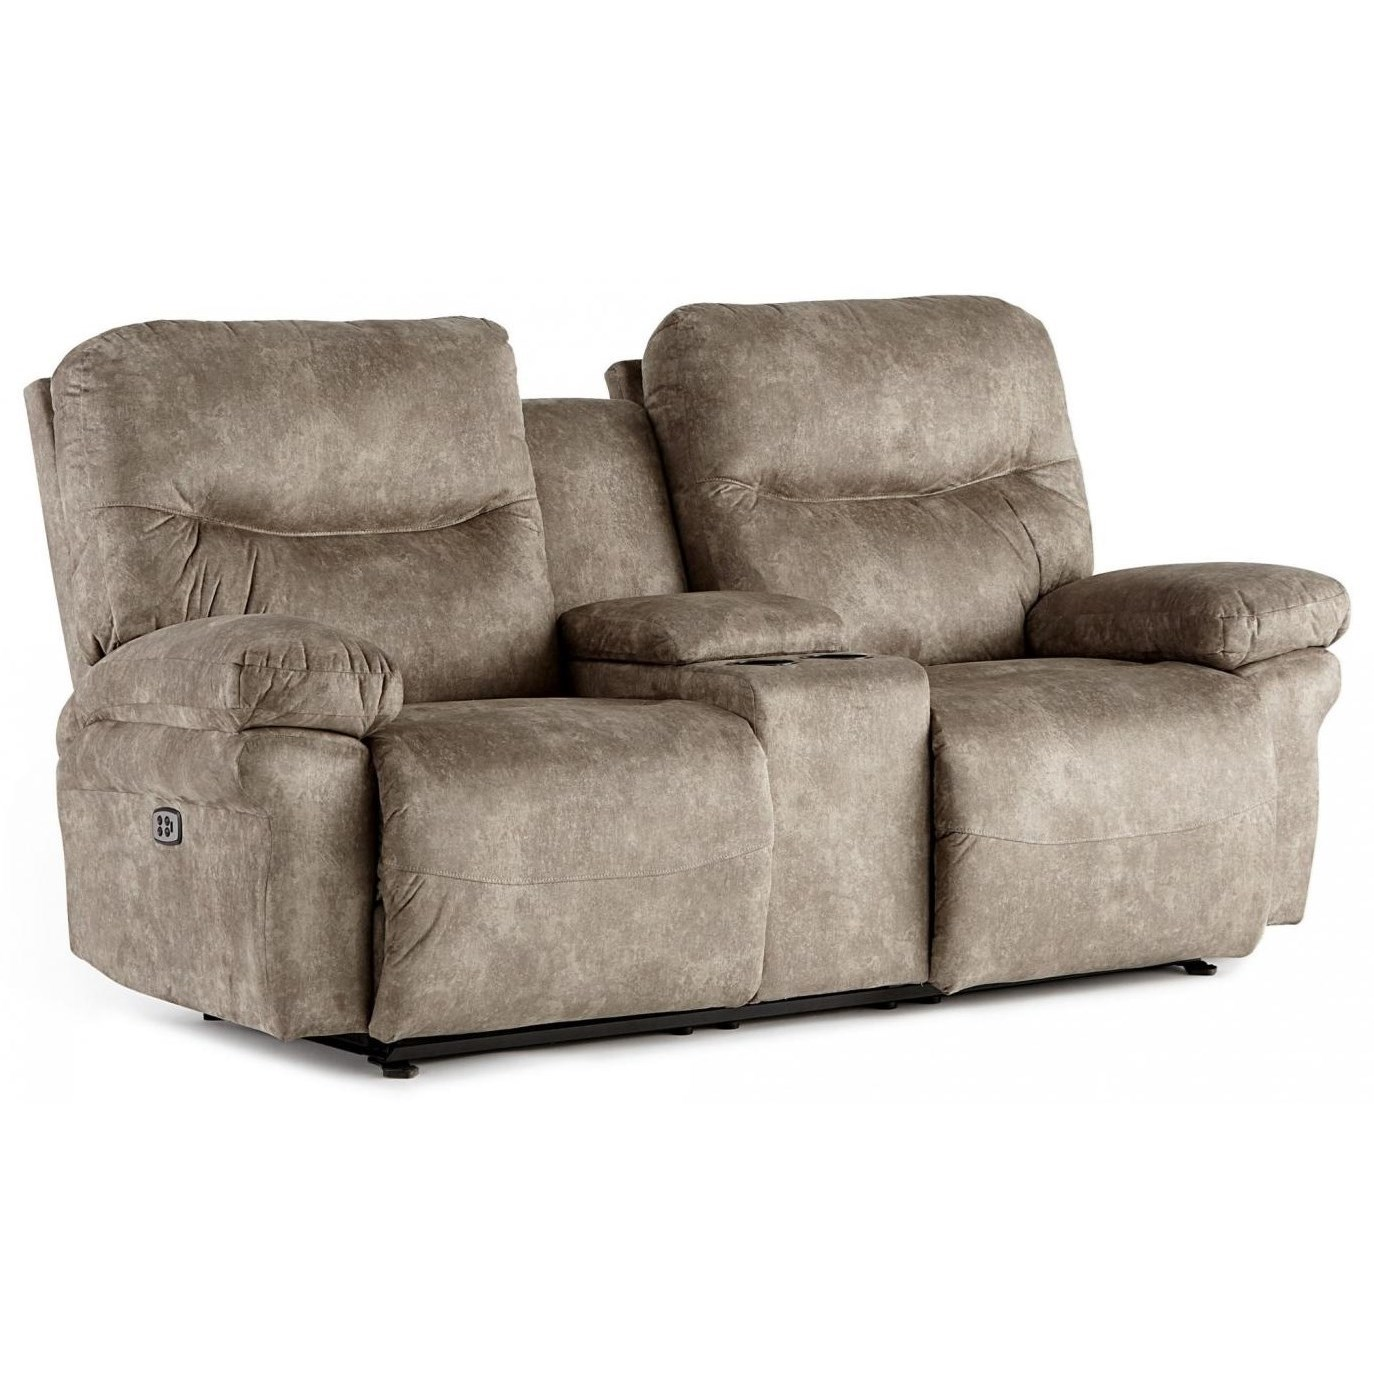 Leya Manual Space Saver Loveseat with Console by Best Home Furnishings at Baer's Furniture